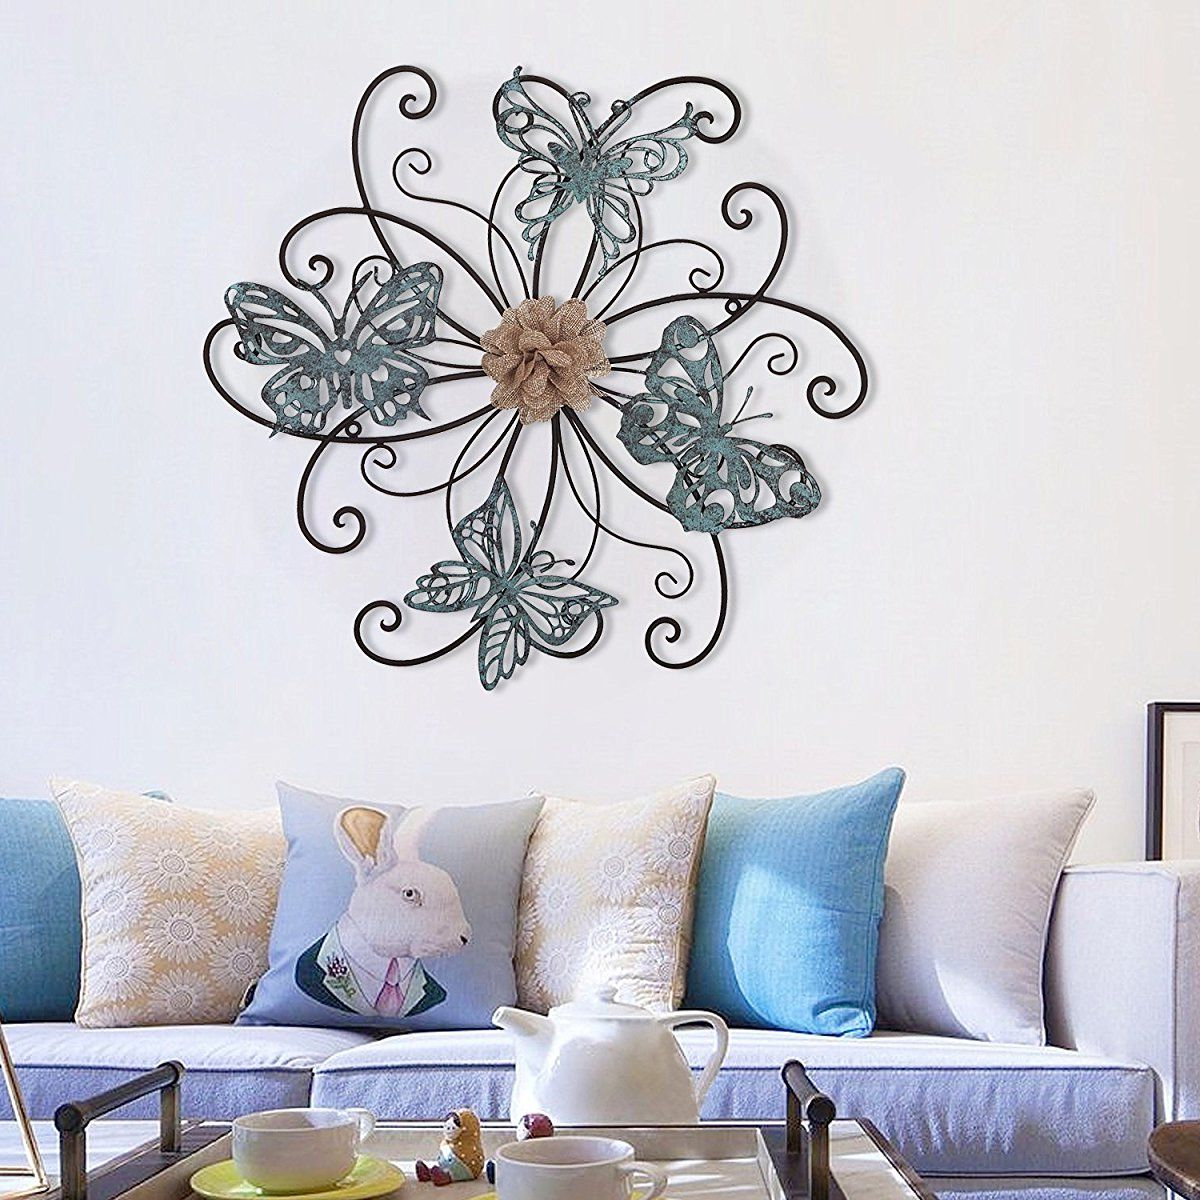 Flower And Butterfly Urban Design Metal Wall Decor Regarding Most Recent Homes Art Flower And Butterfly Urban Design Metal Wall Decor For (View 9 of 20)